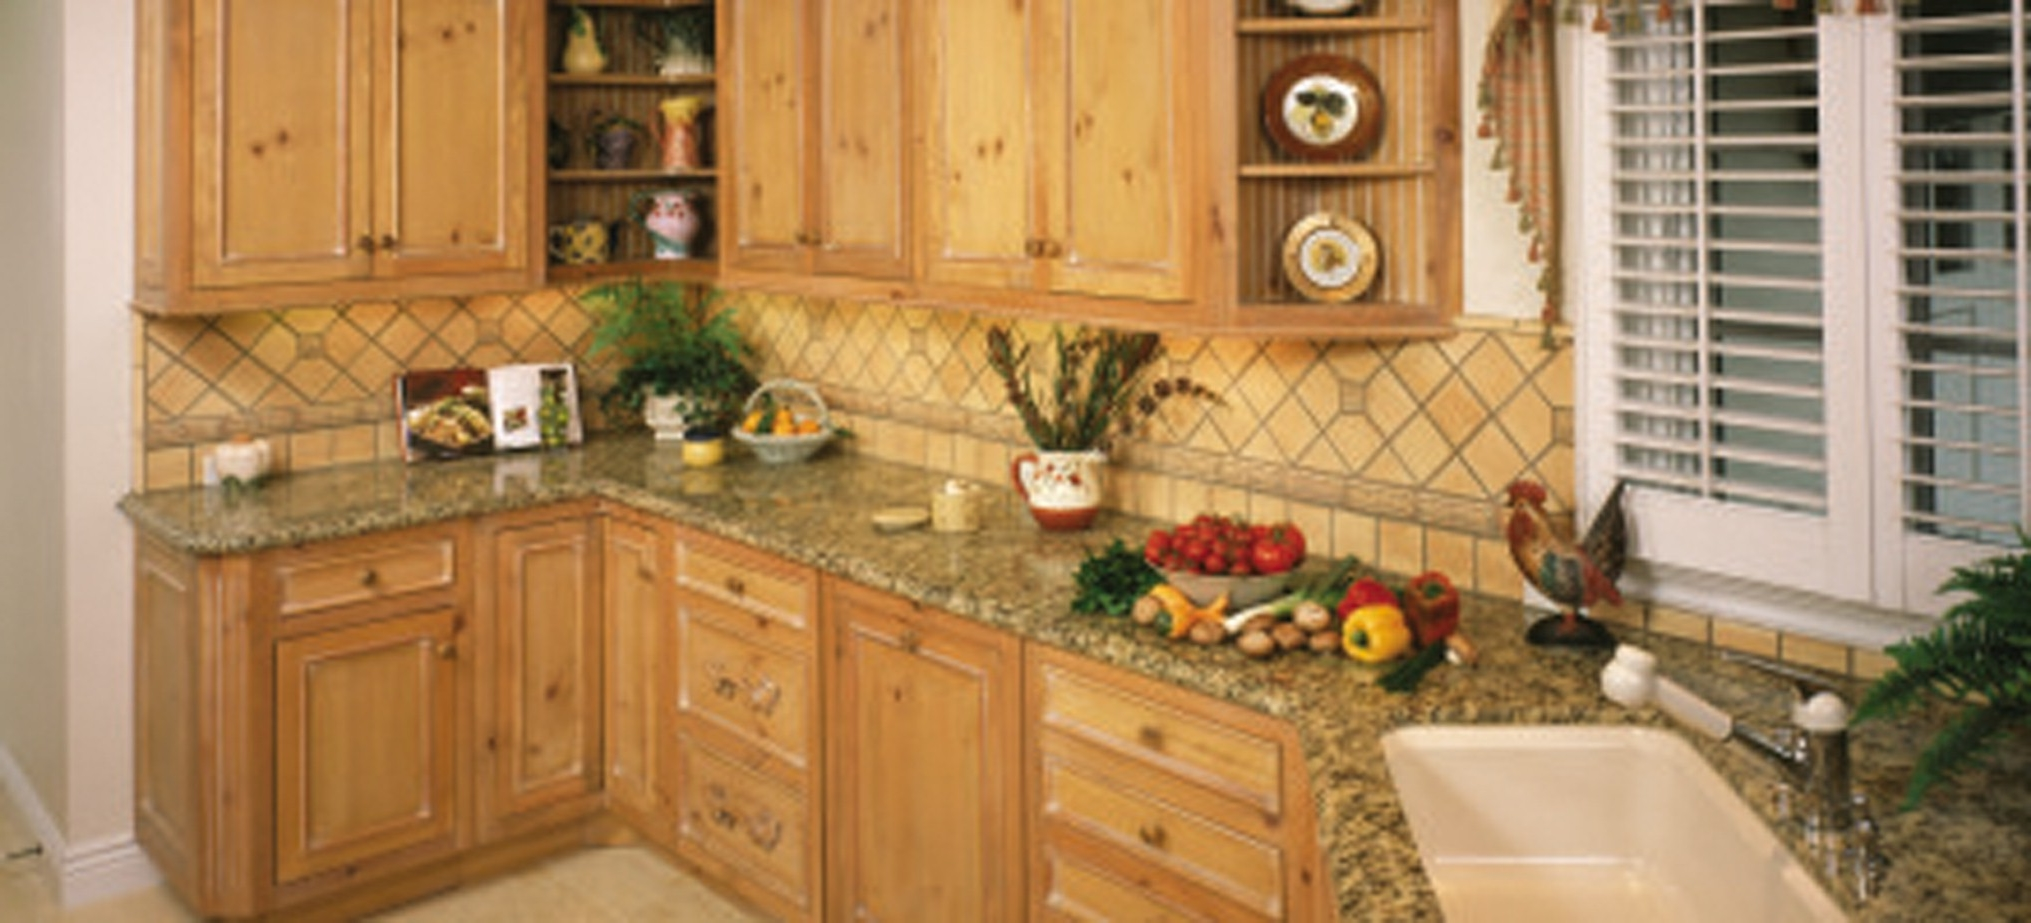 Wooden Kitchen Furniture With Divine Wooden Cabinet And Luxury Countertop Design Even Fair Window Curtain (Image 19 of 19)